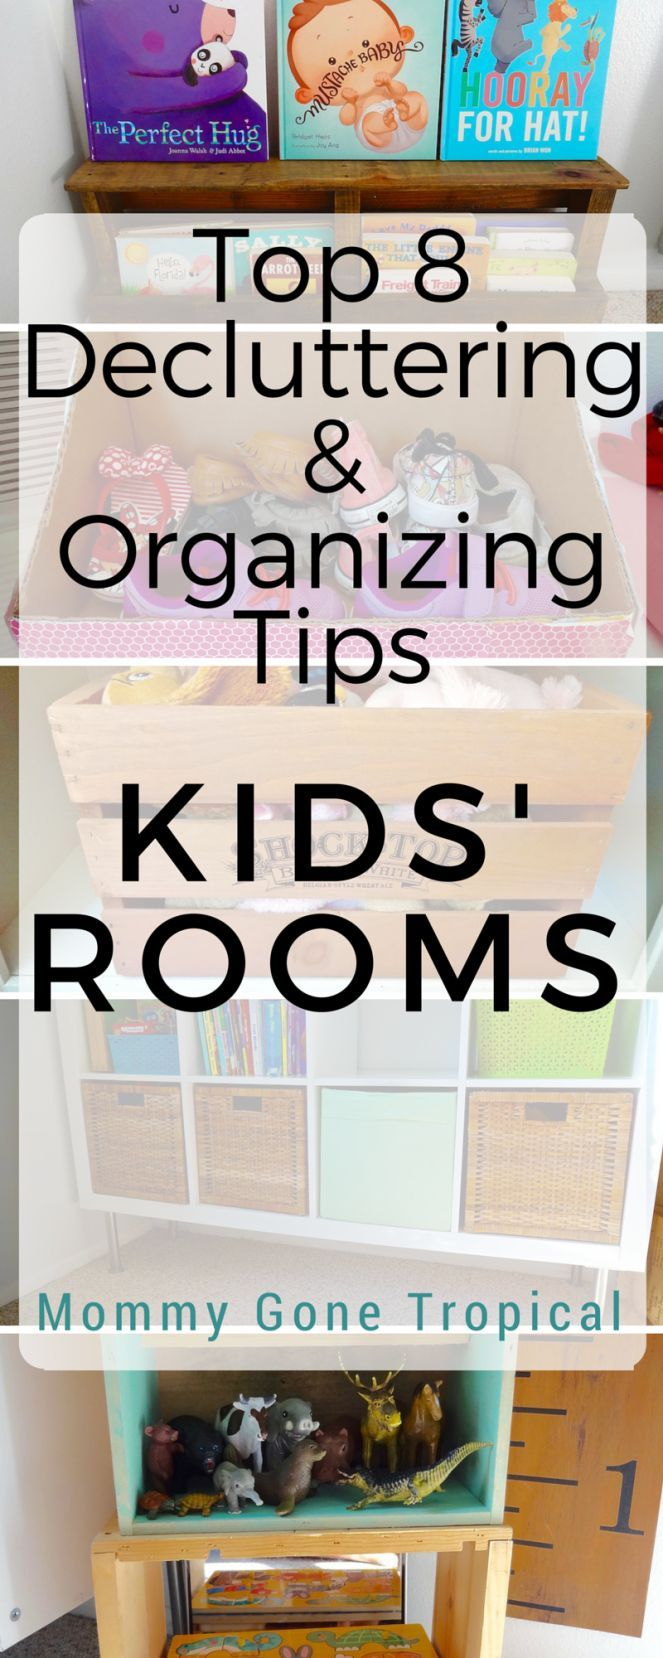 Top 8 decluttering and organizing tips for kids' rooms to keep, store, donate or toss/recycle.